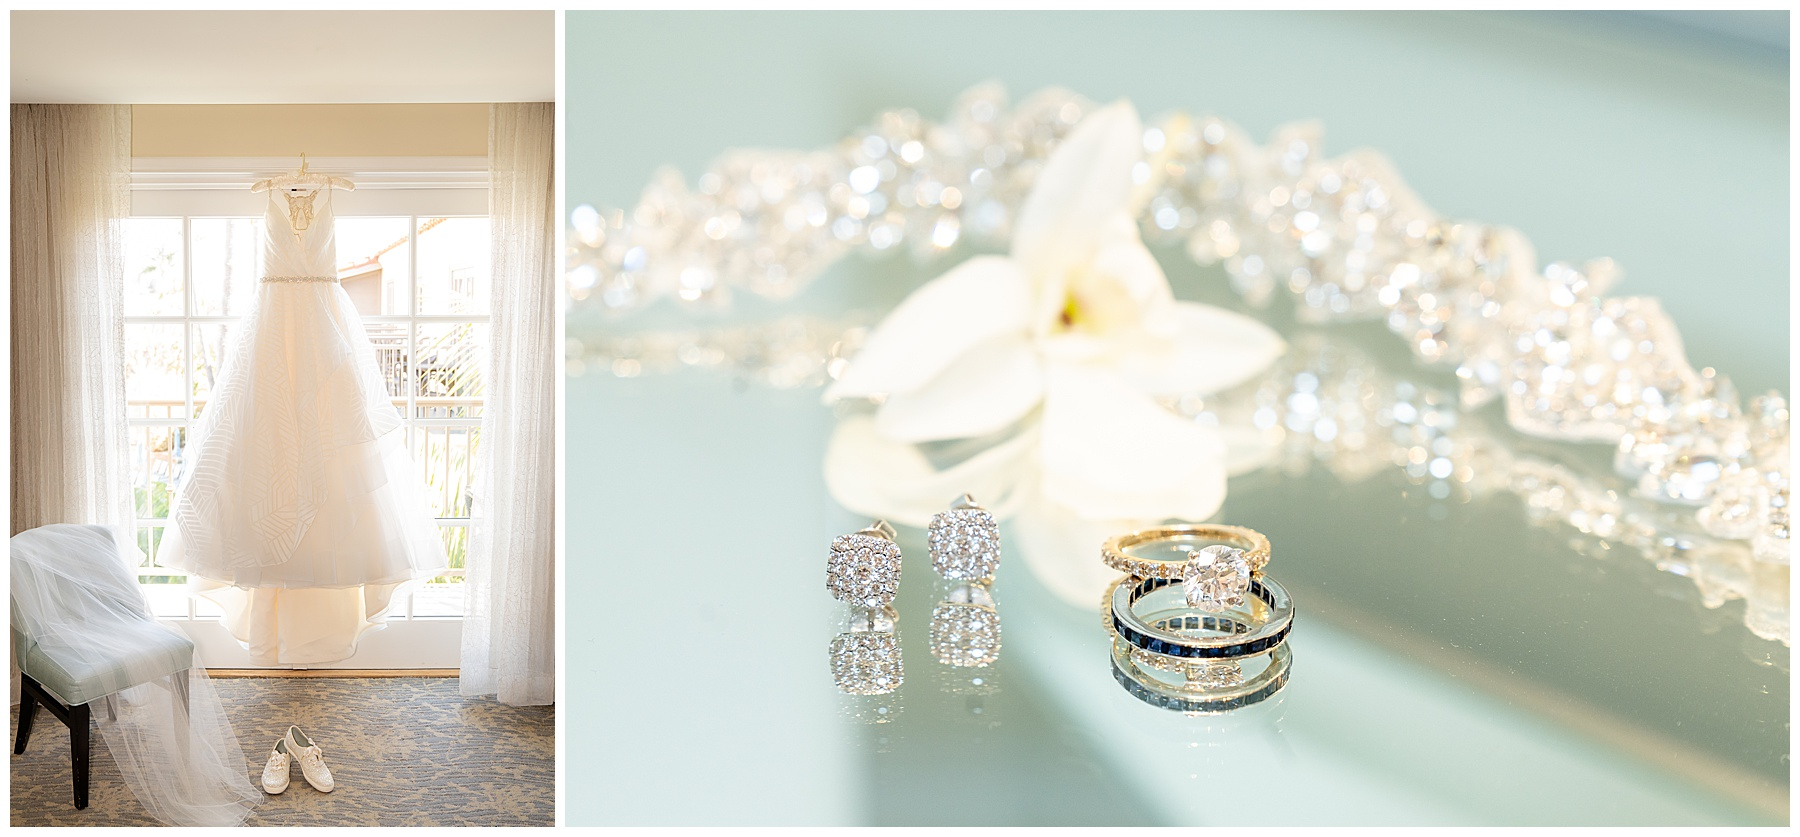 wedding dress and details photo